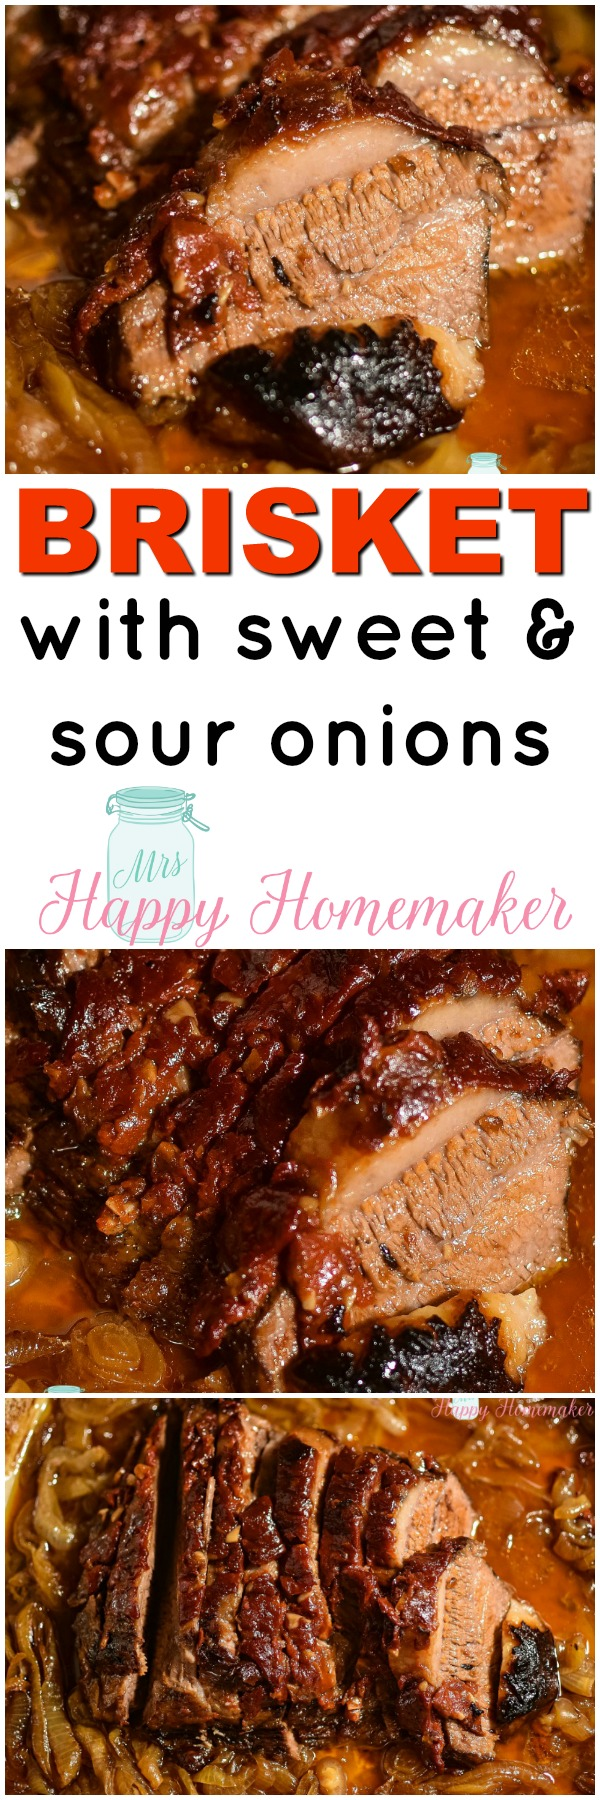 Brisket with Sweet & Sour Onions - this oven braised recipe requires only 7 ingredients & is absolutely amazing in flavor and tenderness.| MrsHappyHomemaker.com @MrsHappyHomemaker